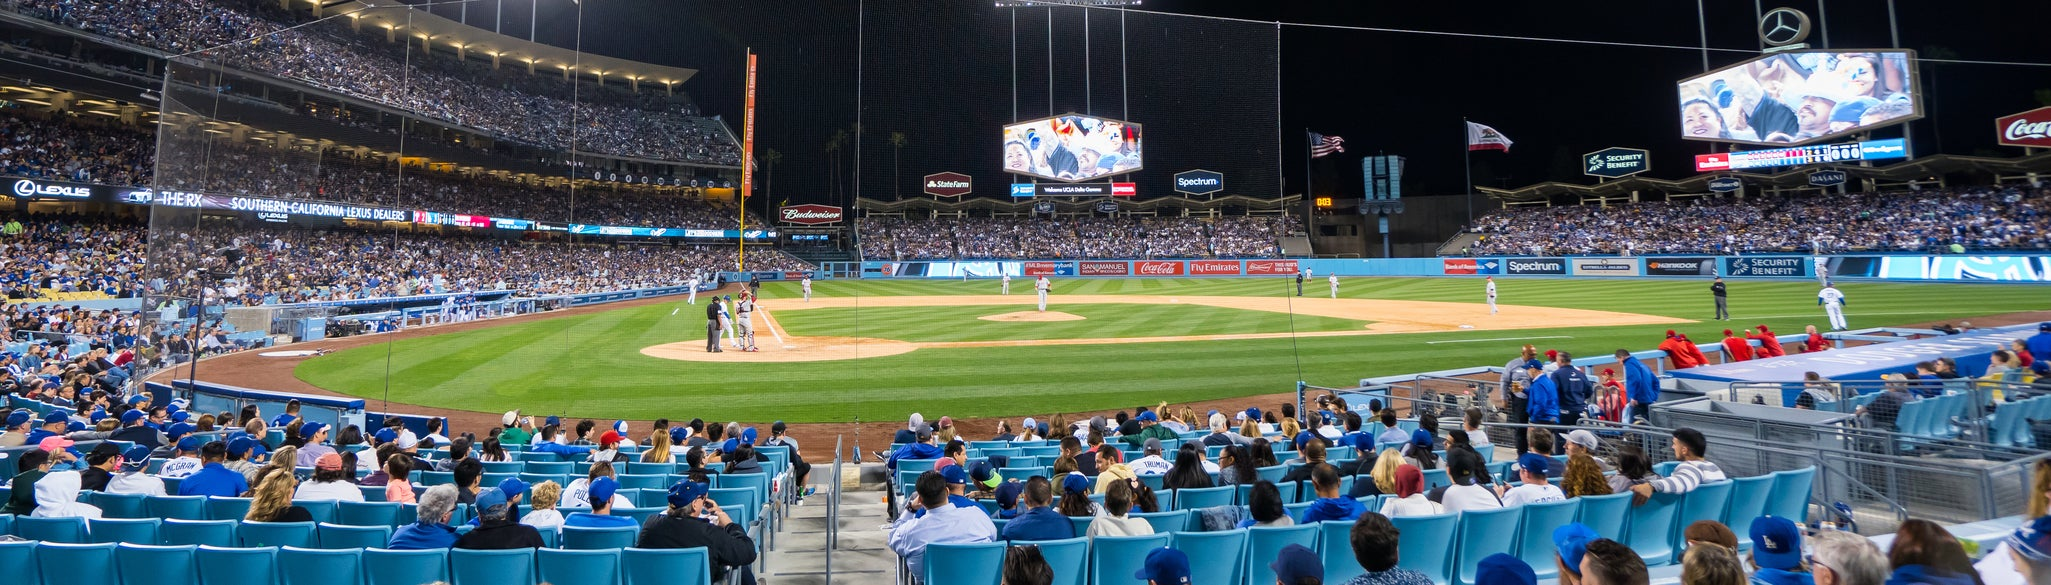 Seat view from Dugout Club